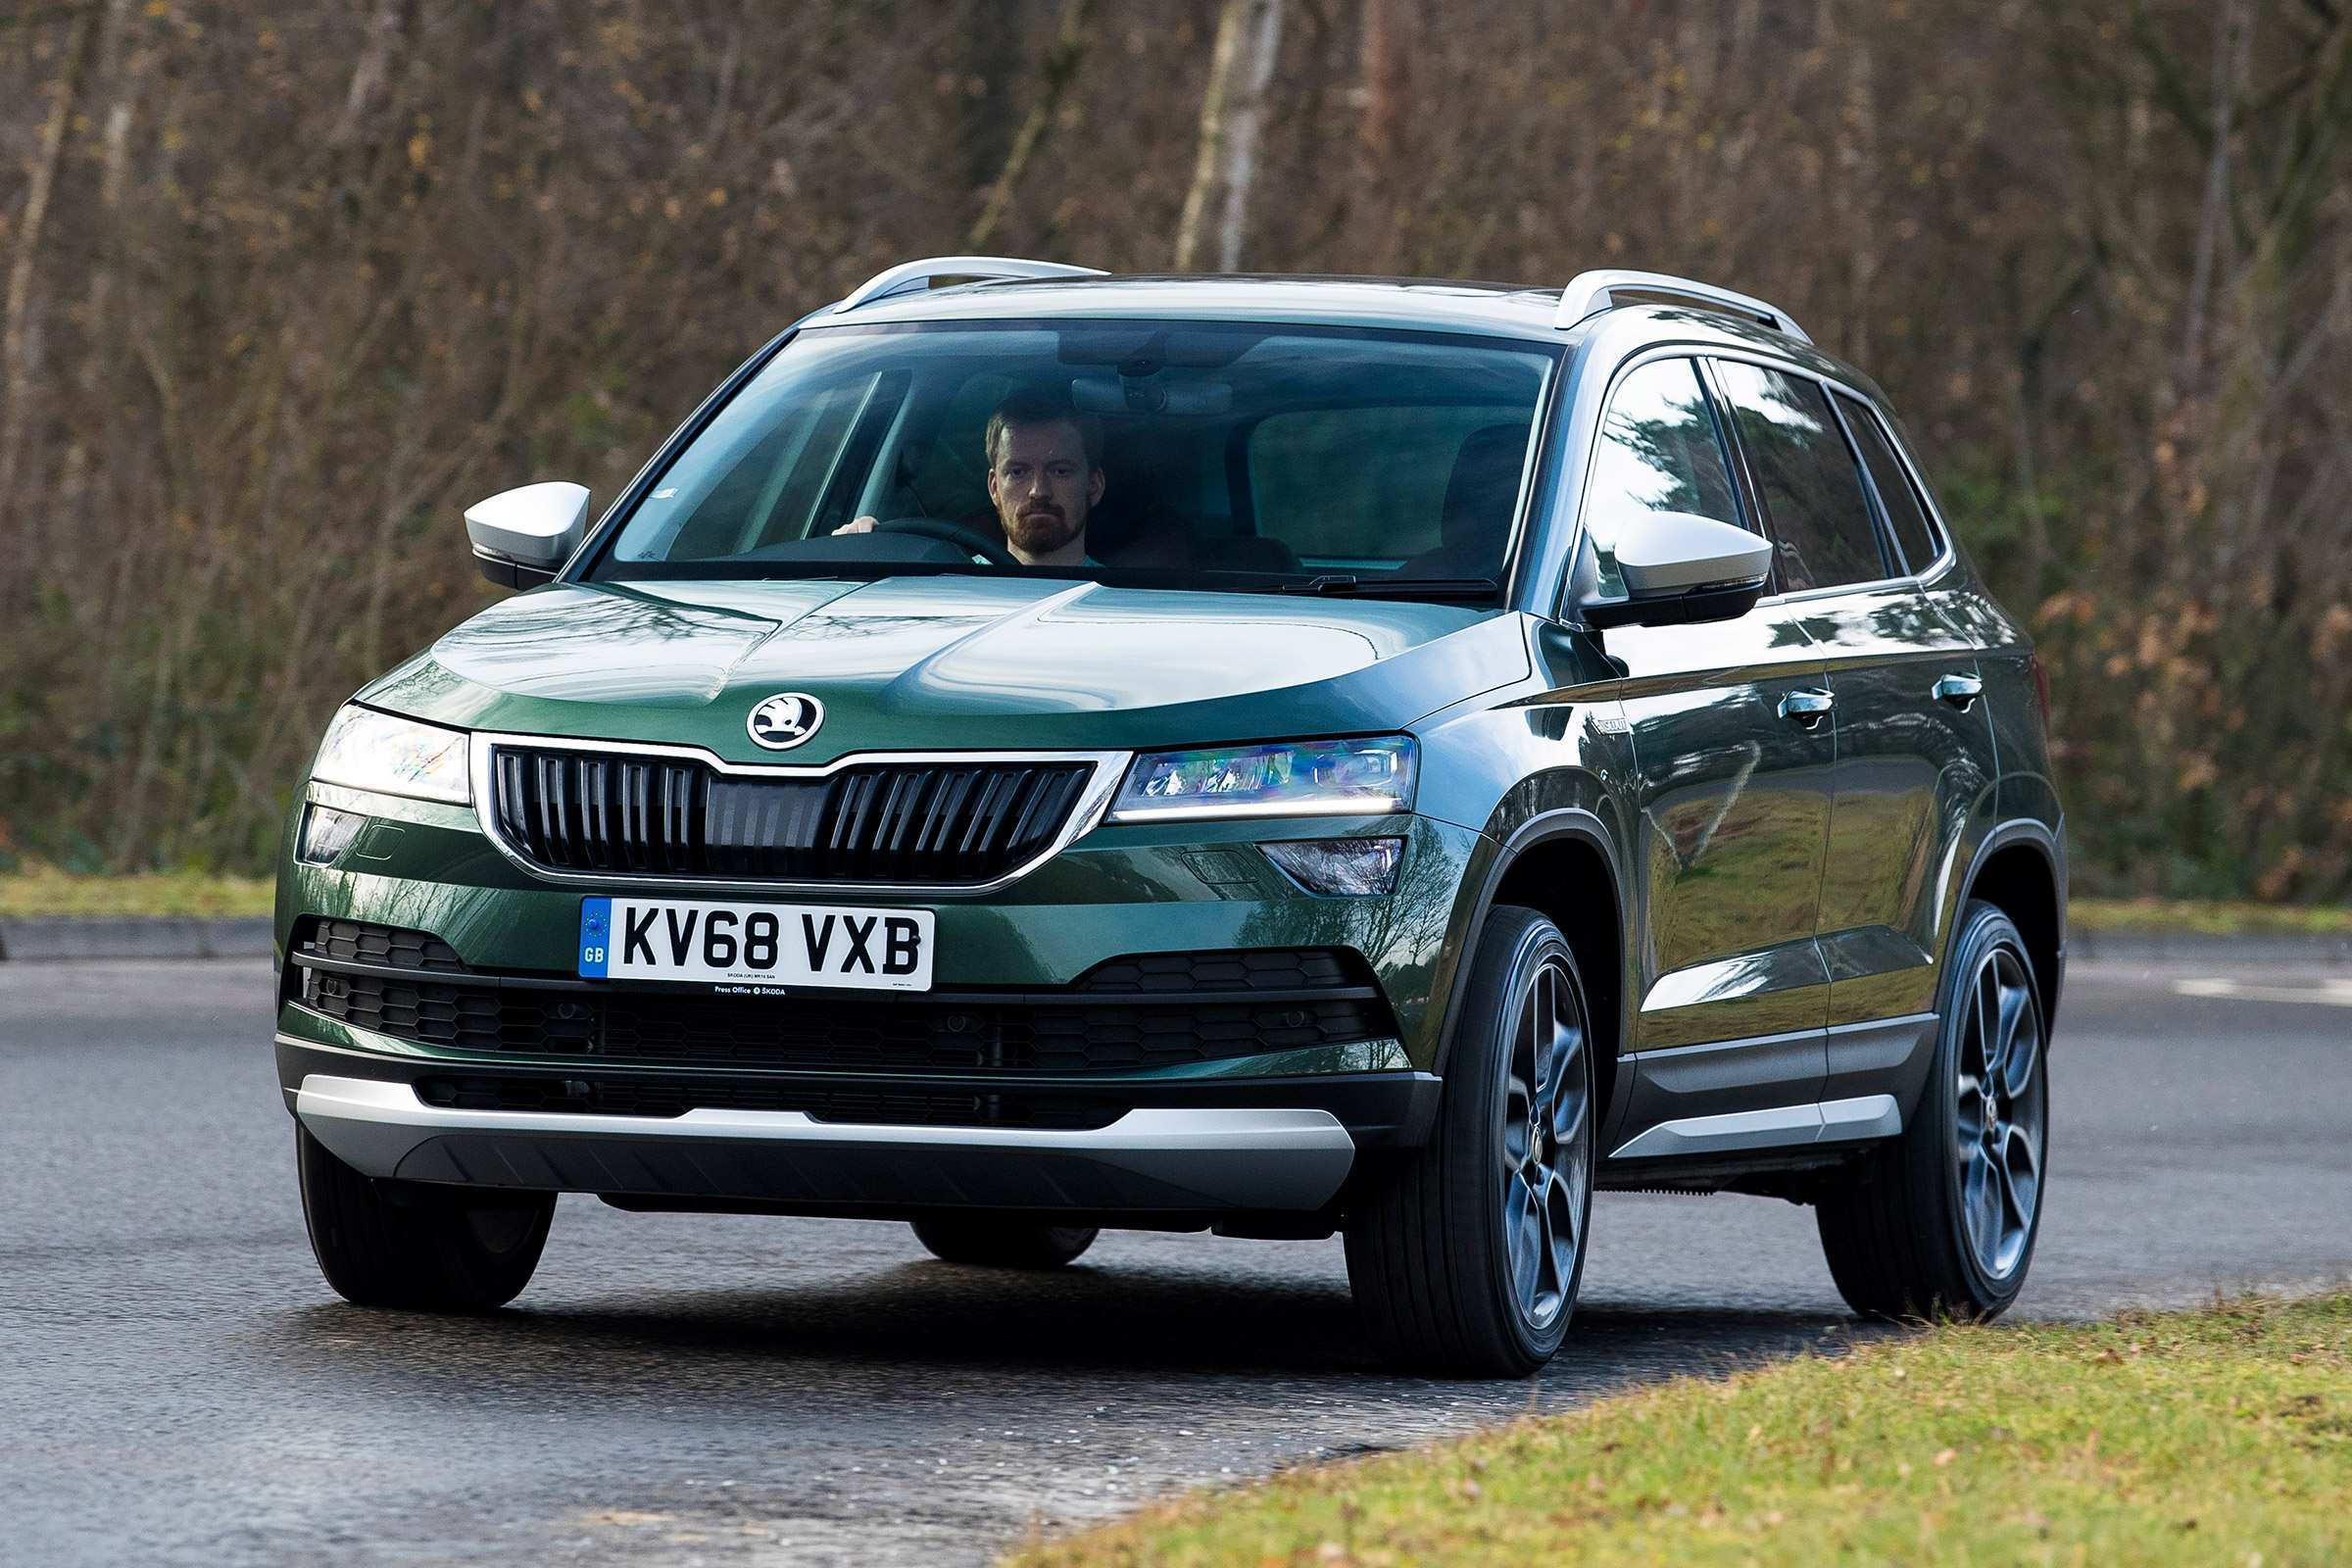 58 The Best 2019 Skoda Yeti Photos